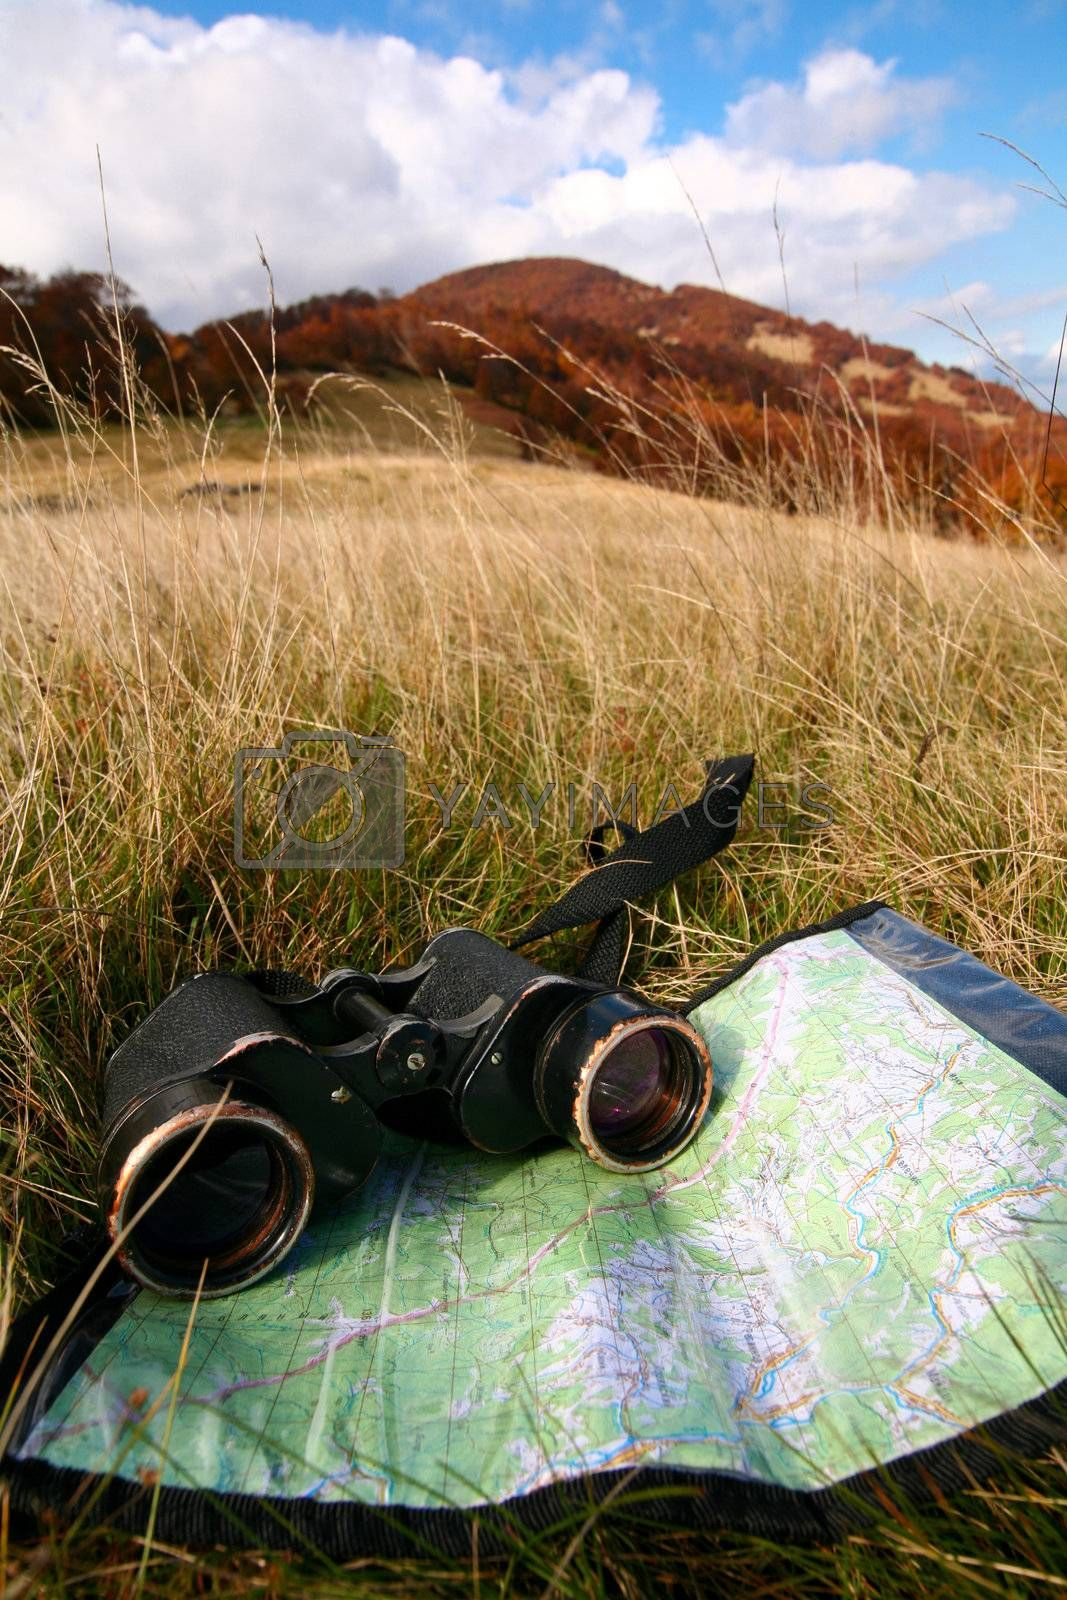 An image of binoculars and map on grass